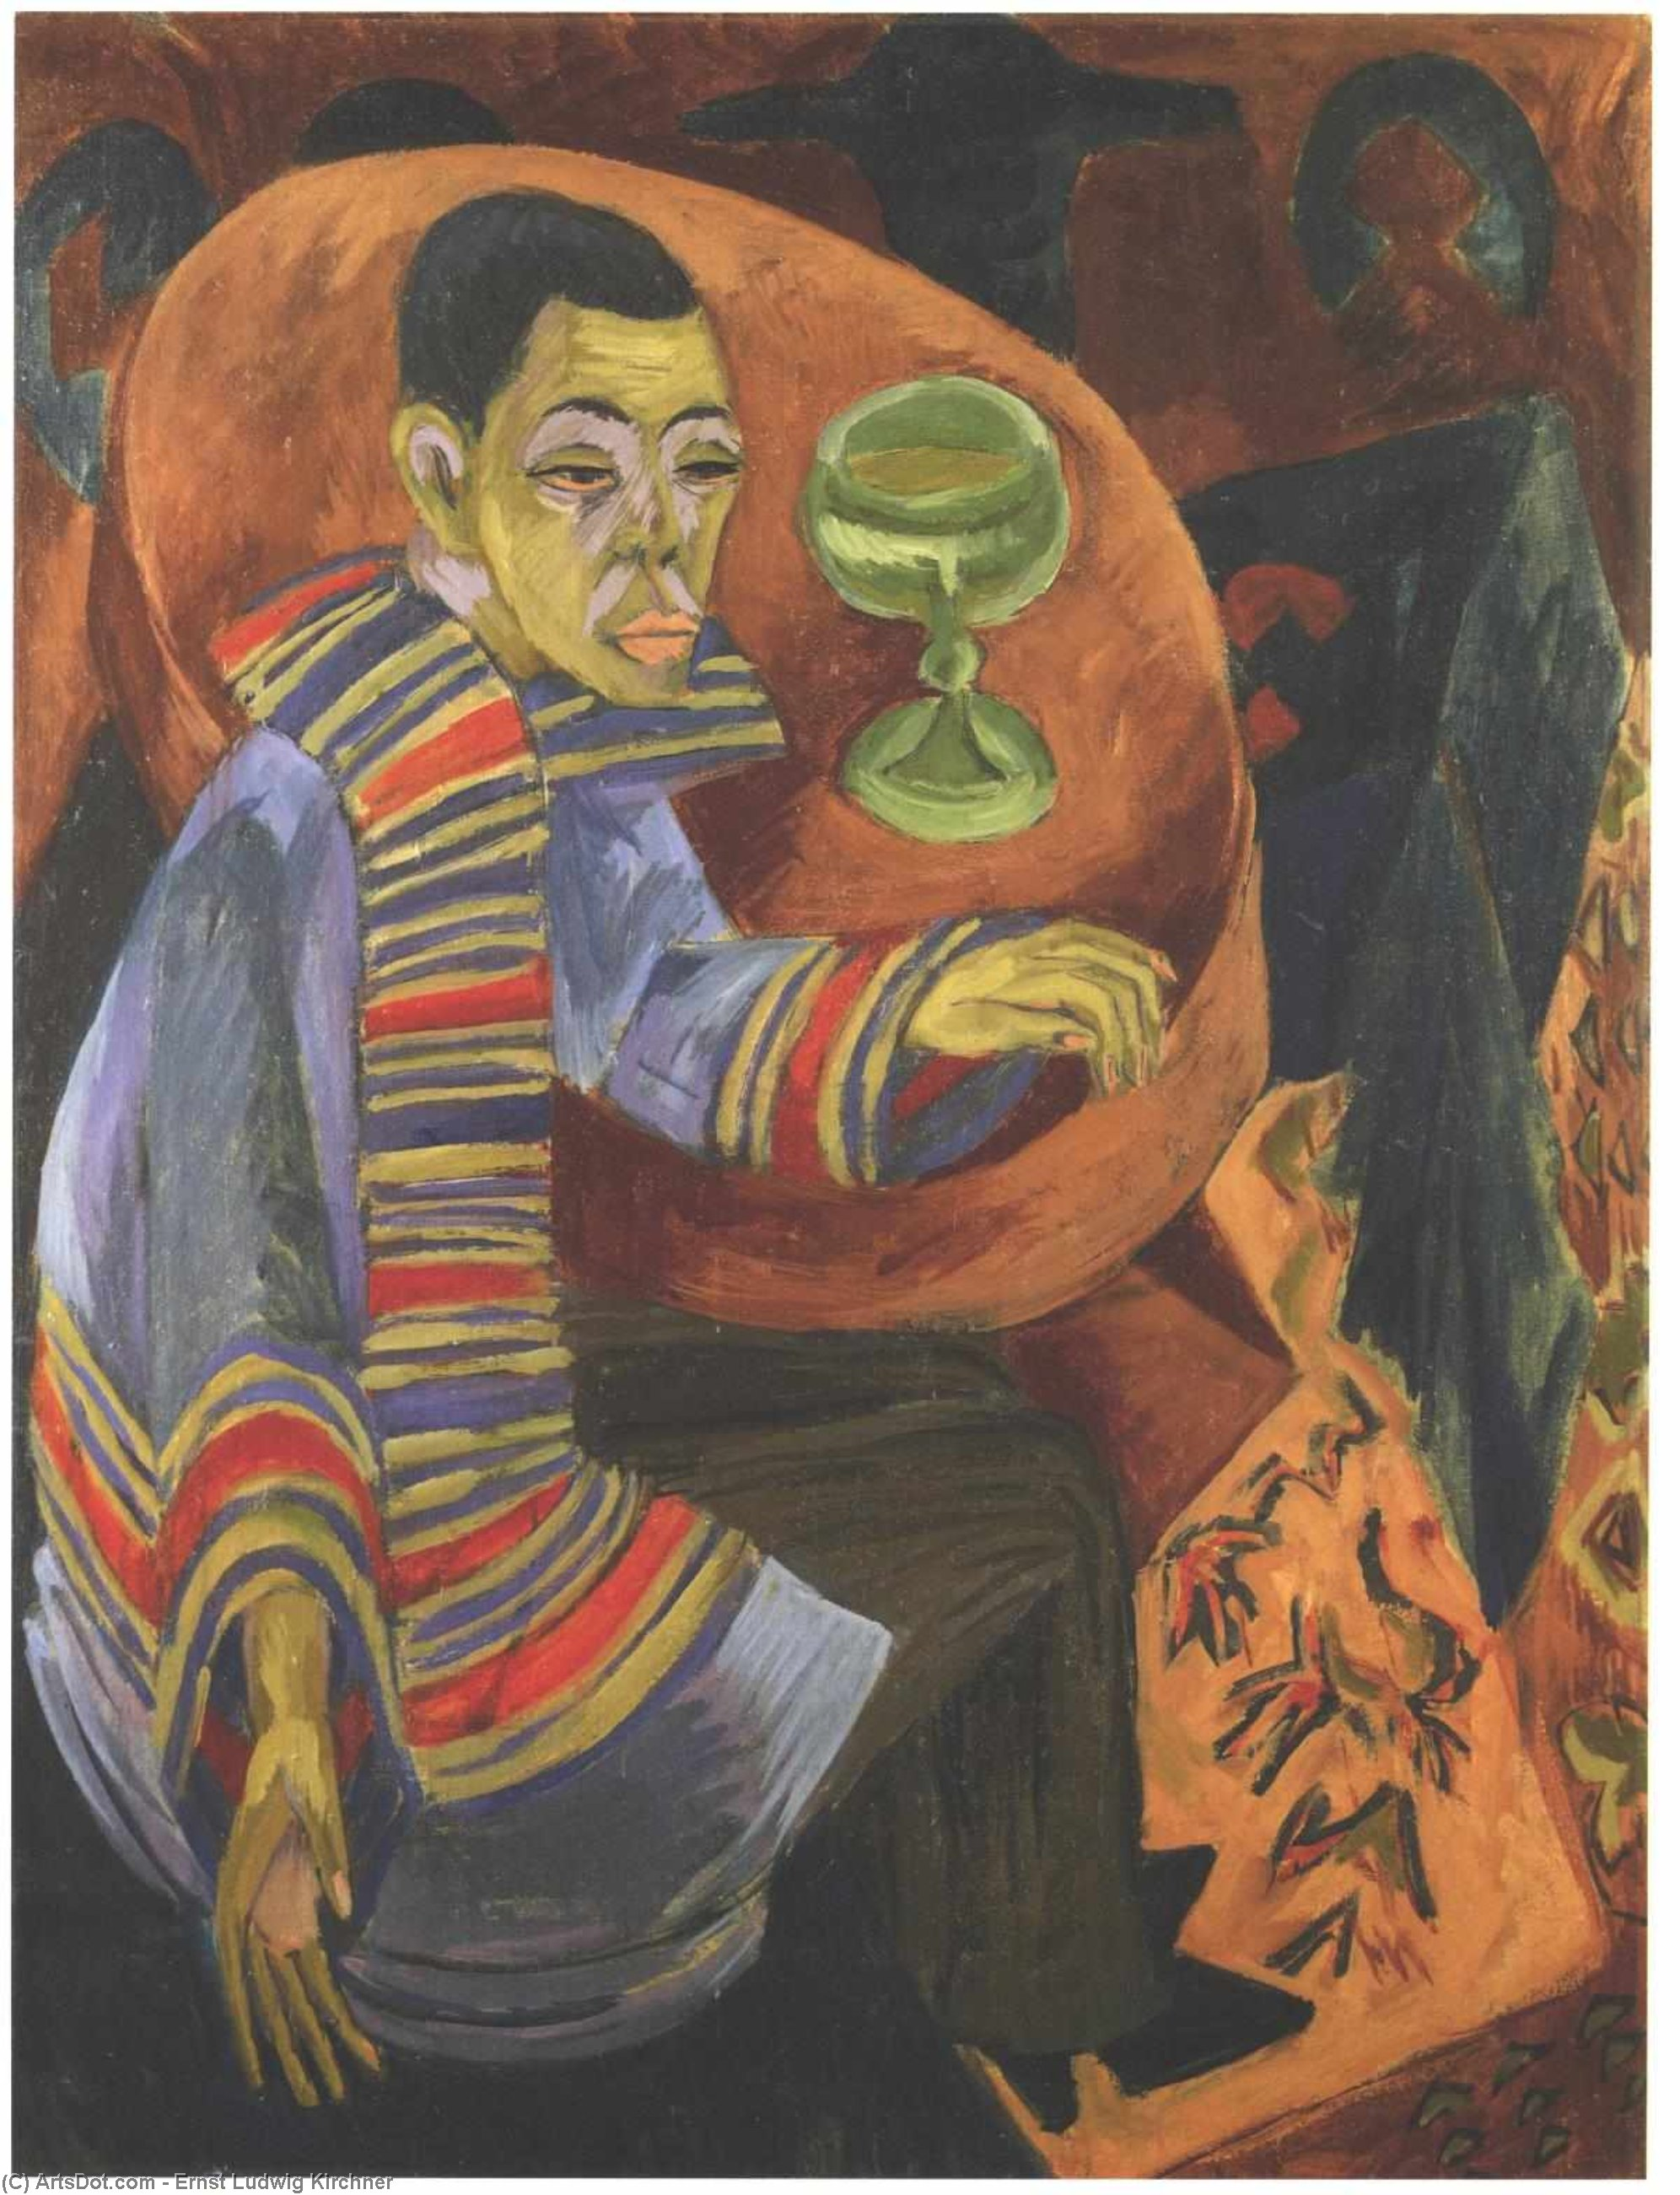 Wikioo.org - The Encyclopedia of Fine Arts - Painting, Artwork by Ernst Ludwig Kirchner - The Drinker (self-portrait)